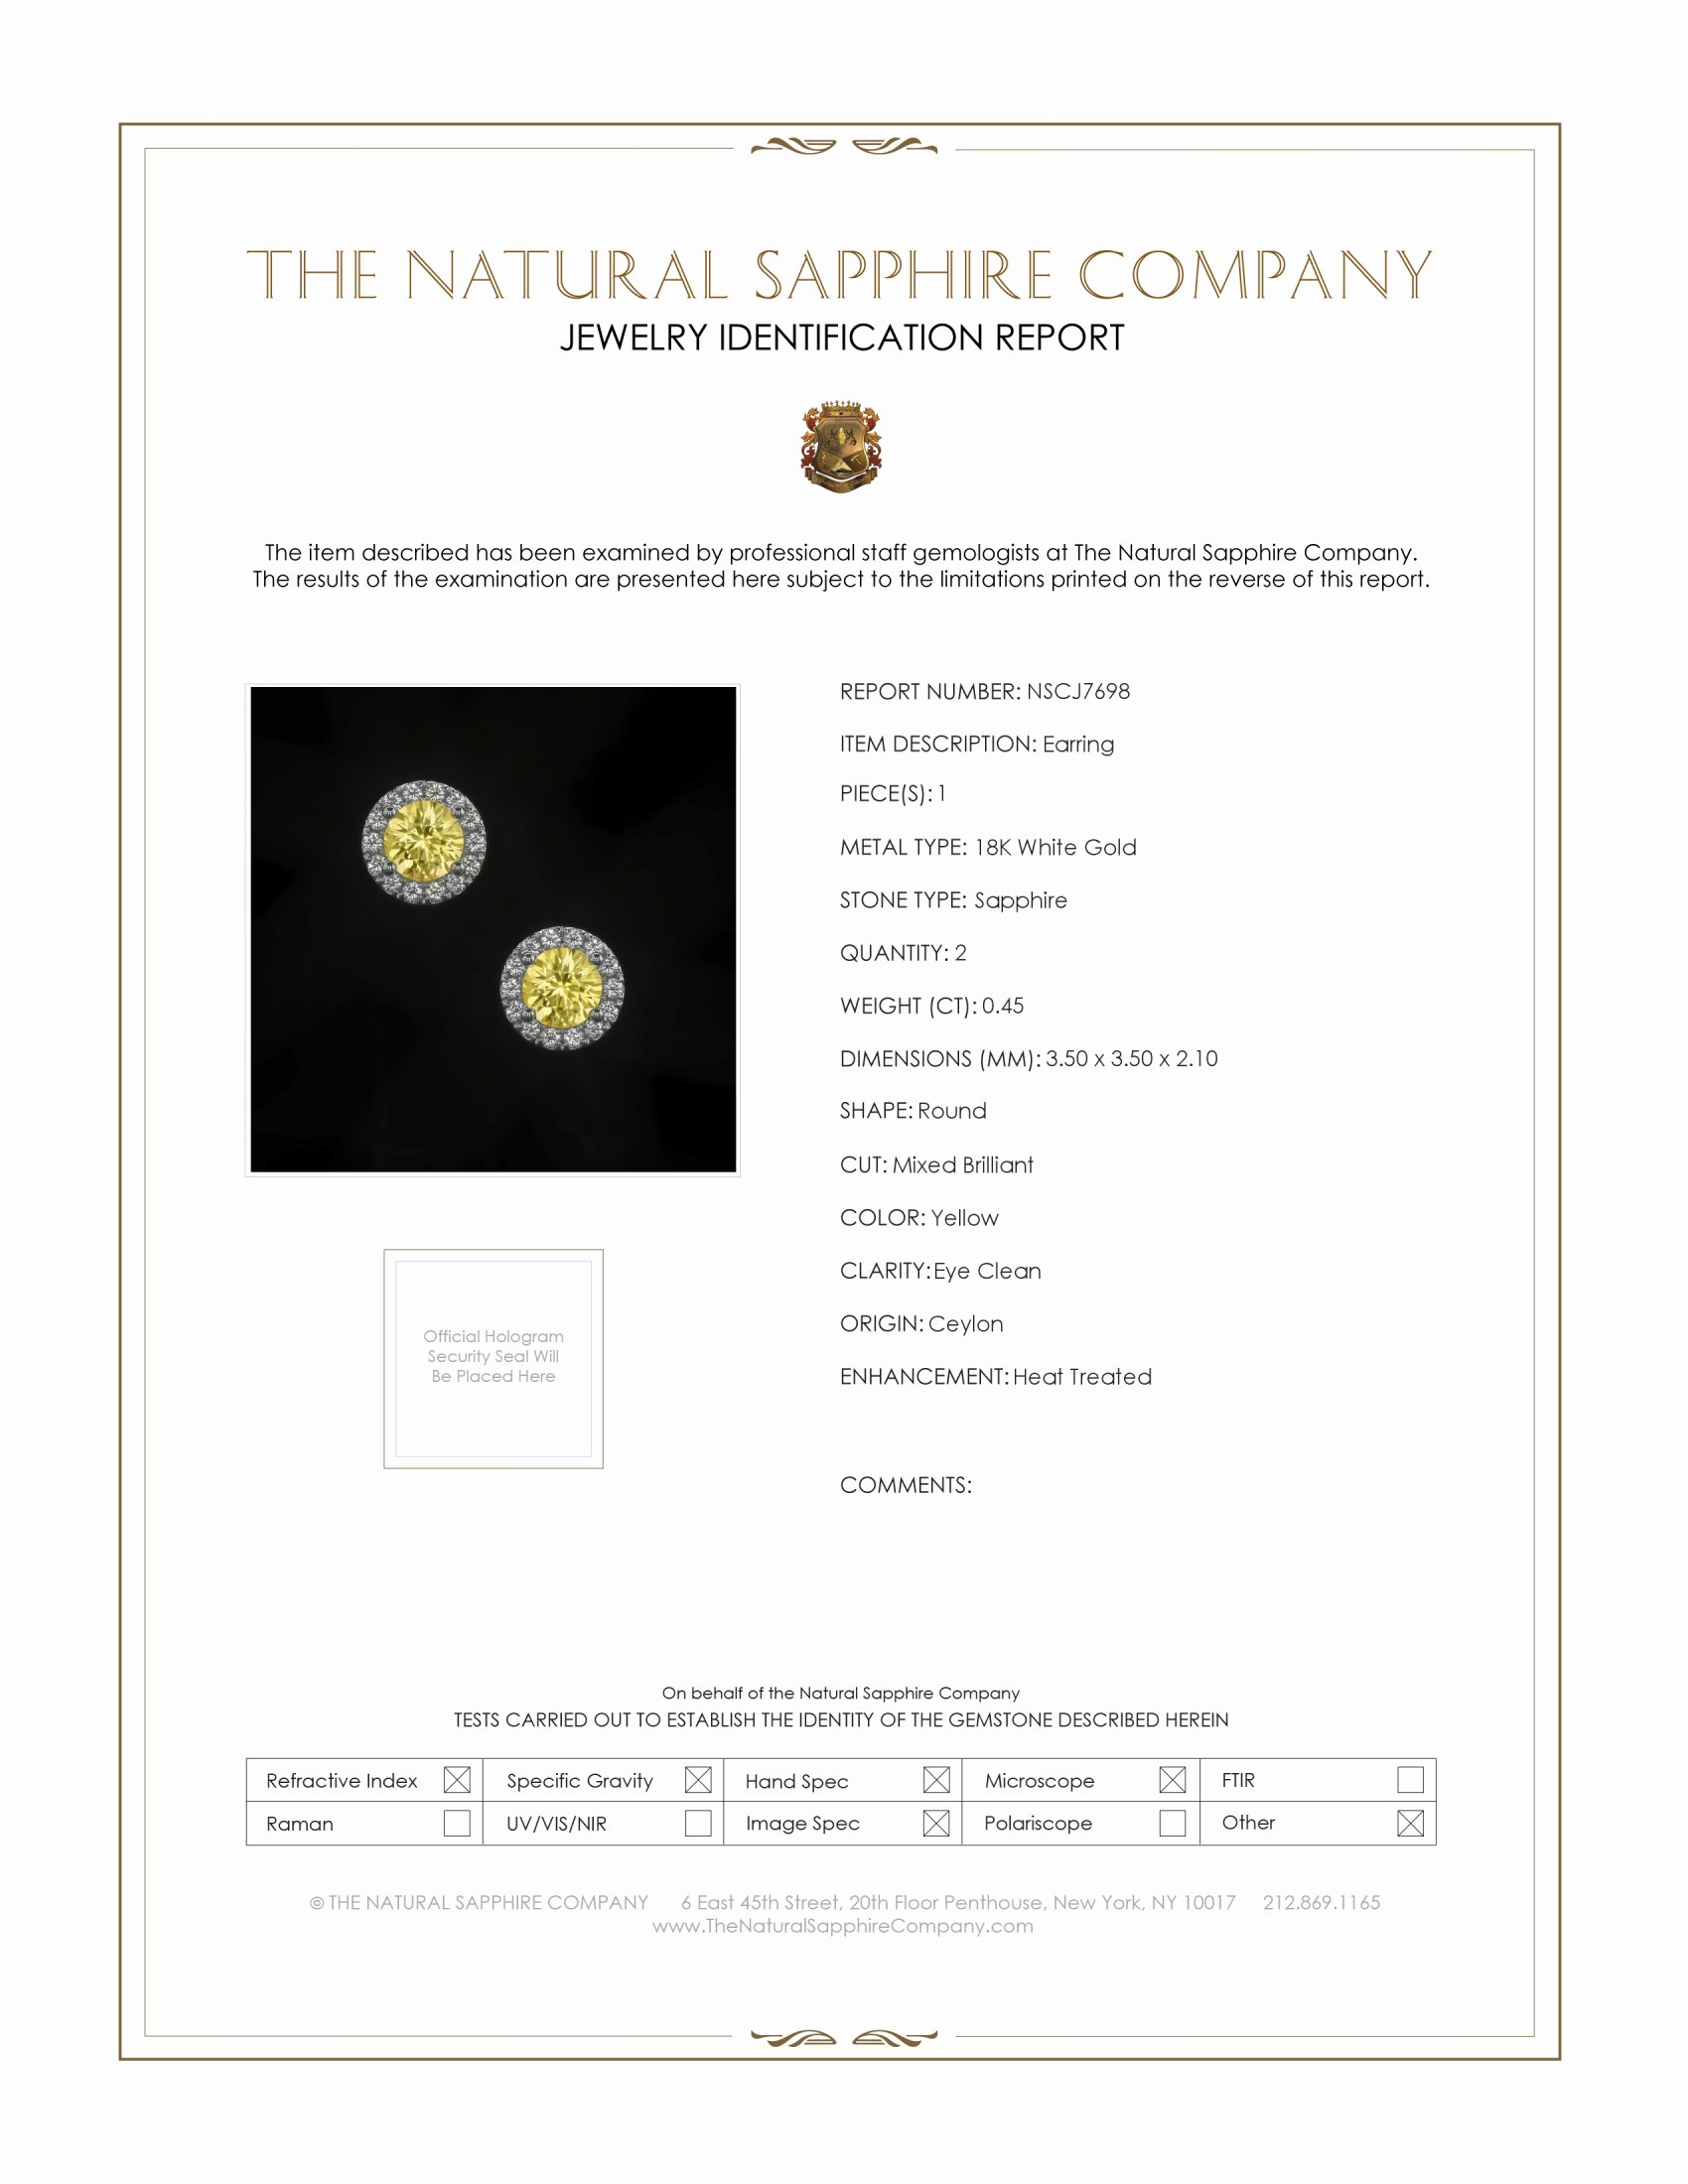 0.45ct Yellow Sapphire Earring Certification